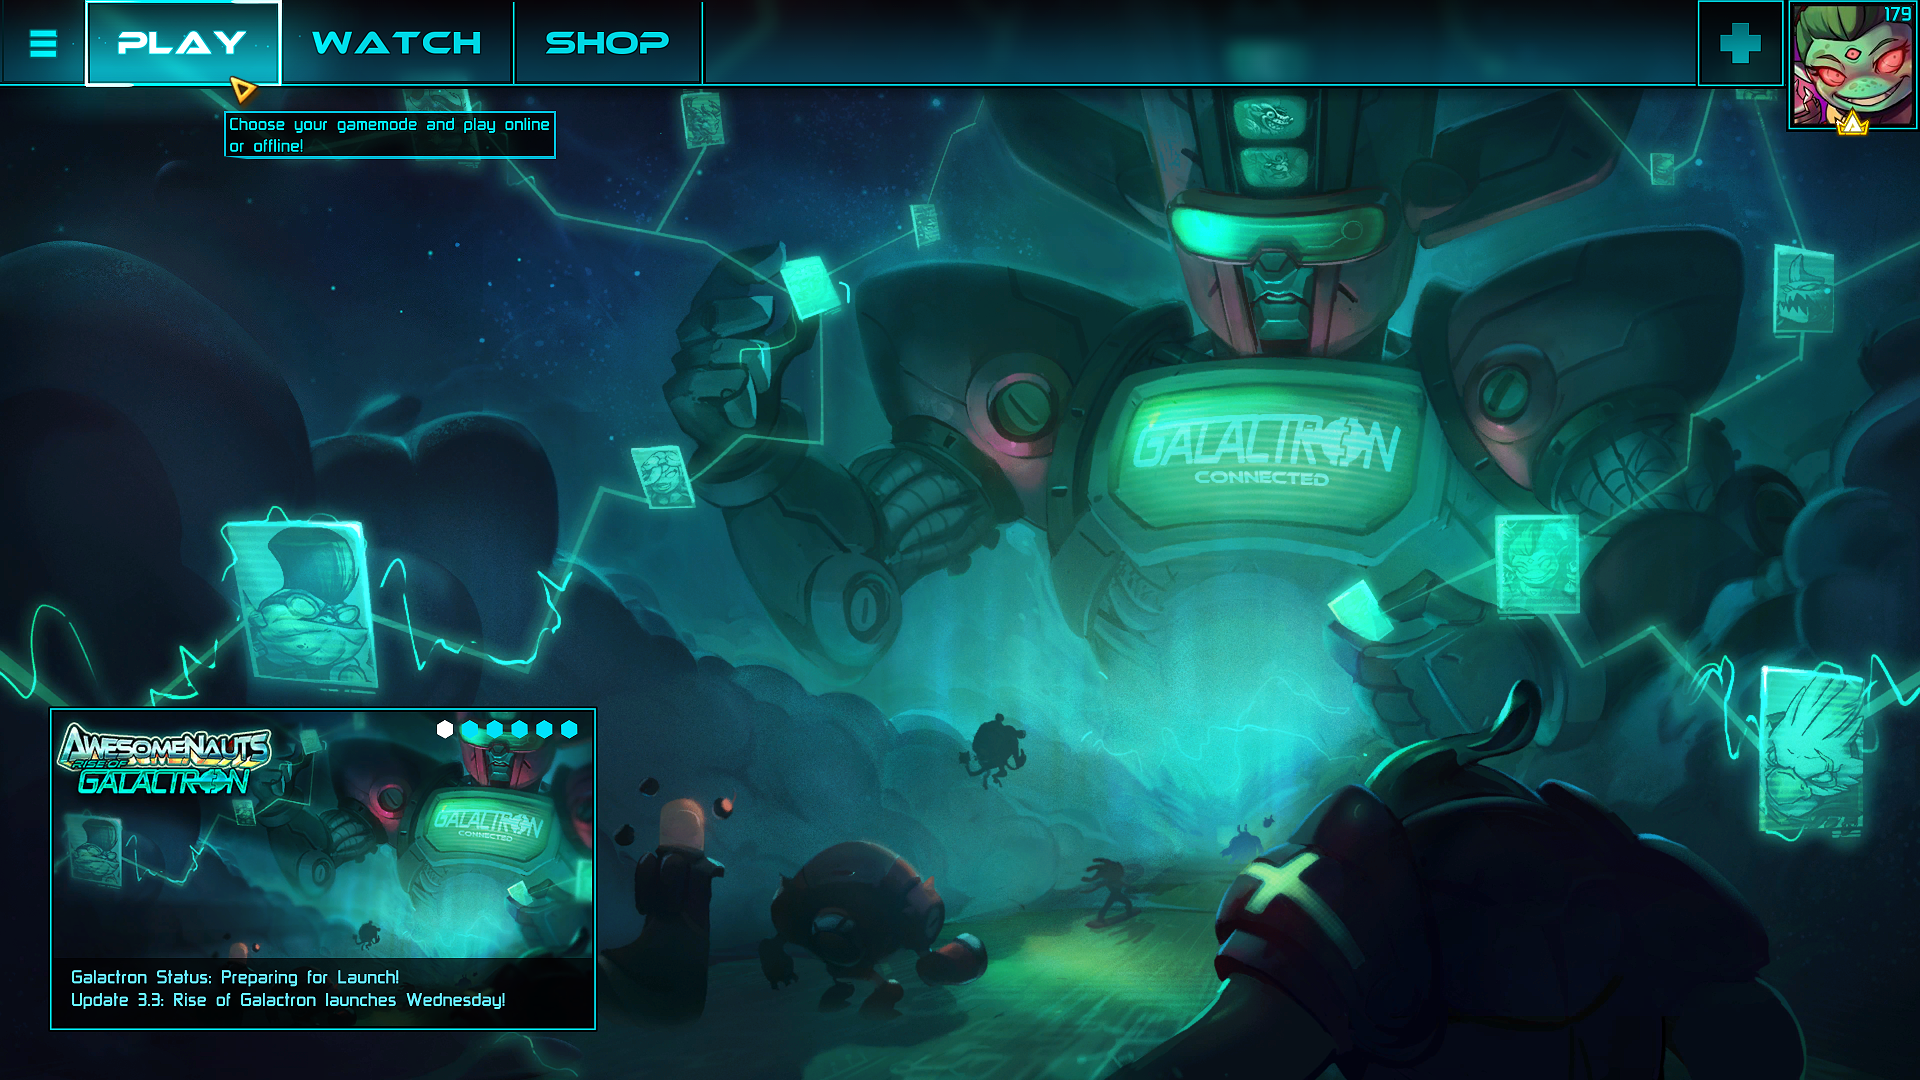 awesomenauts_main_menu